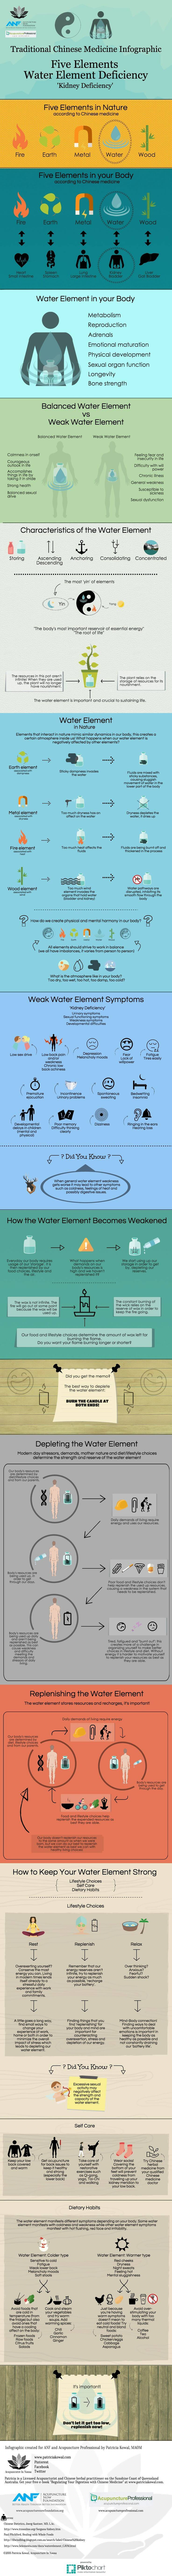 infographic-water-kidney